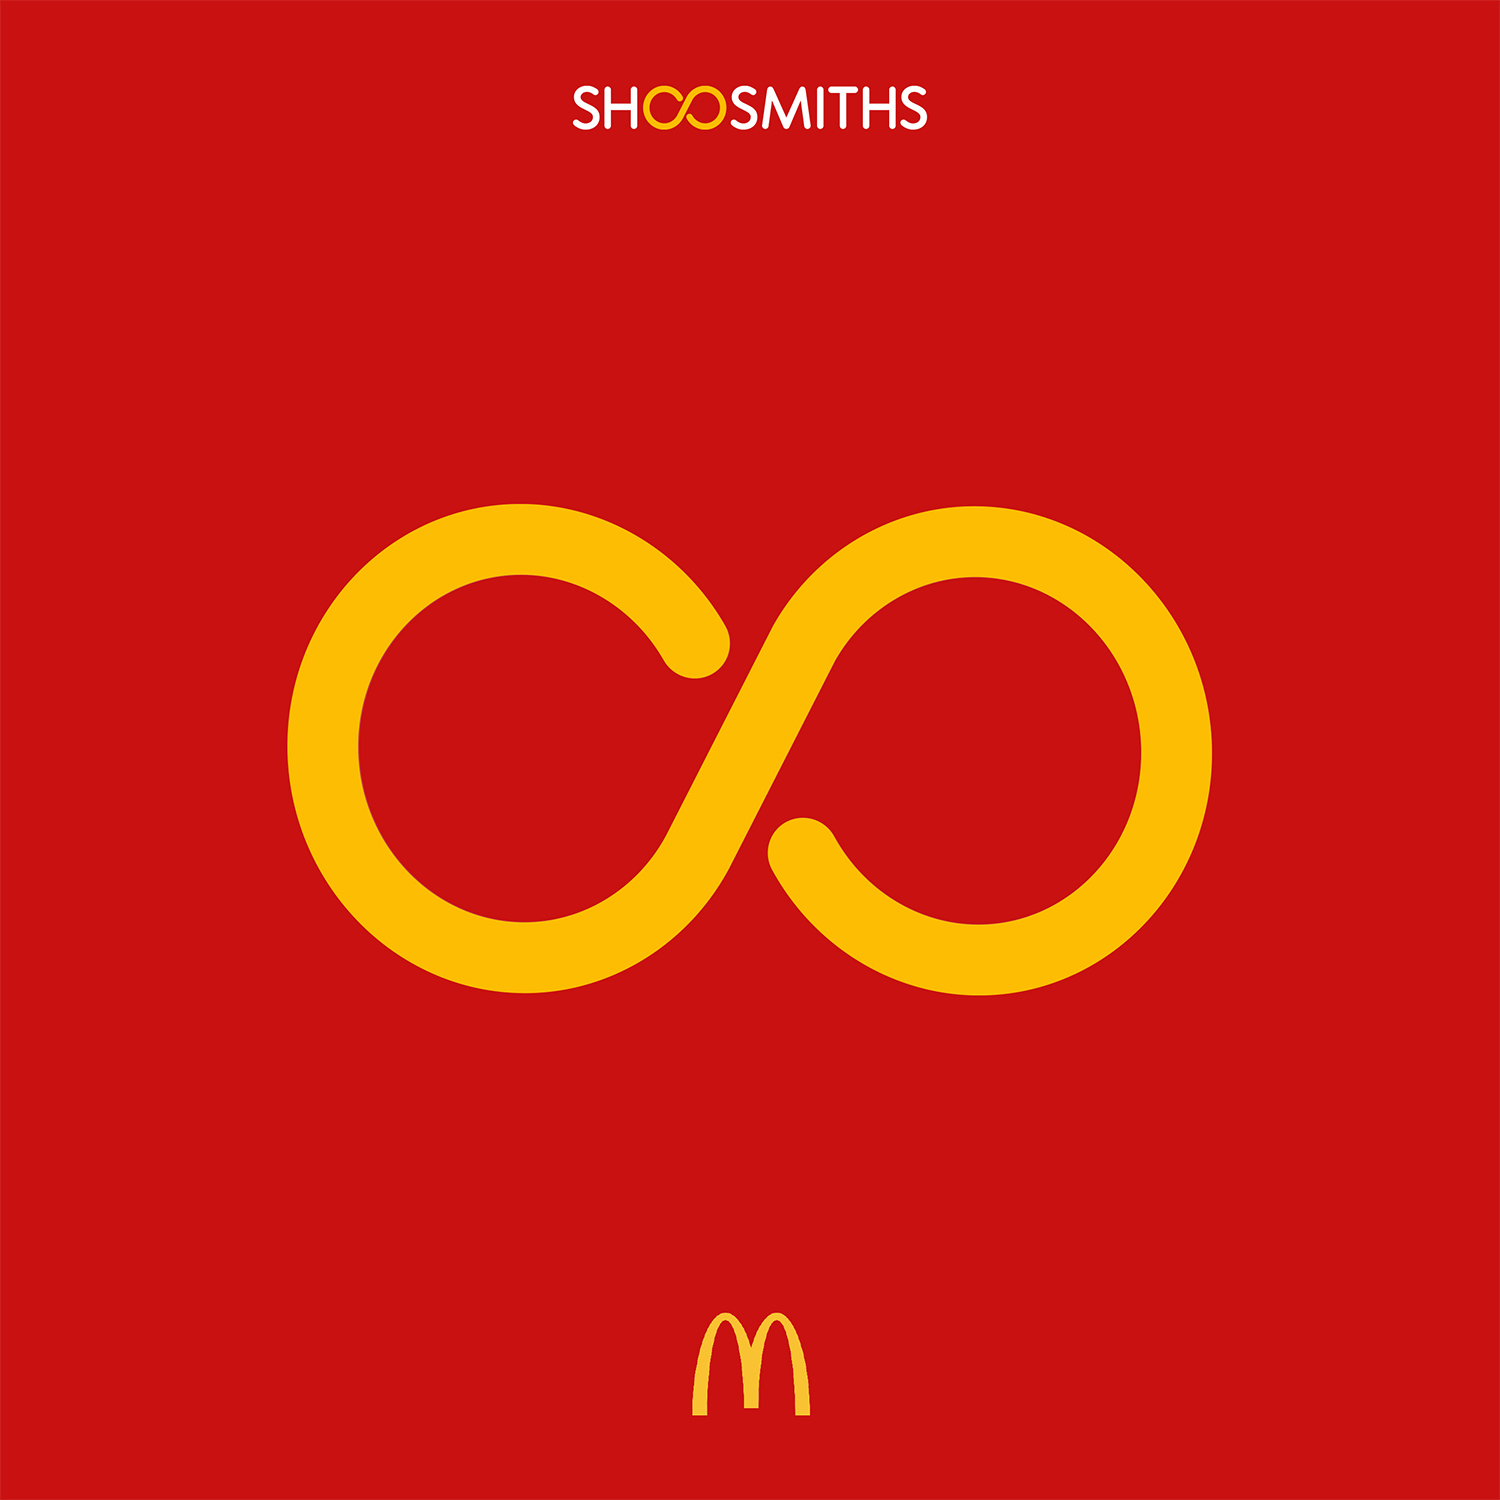 mcdonalds shoosmiths